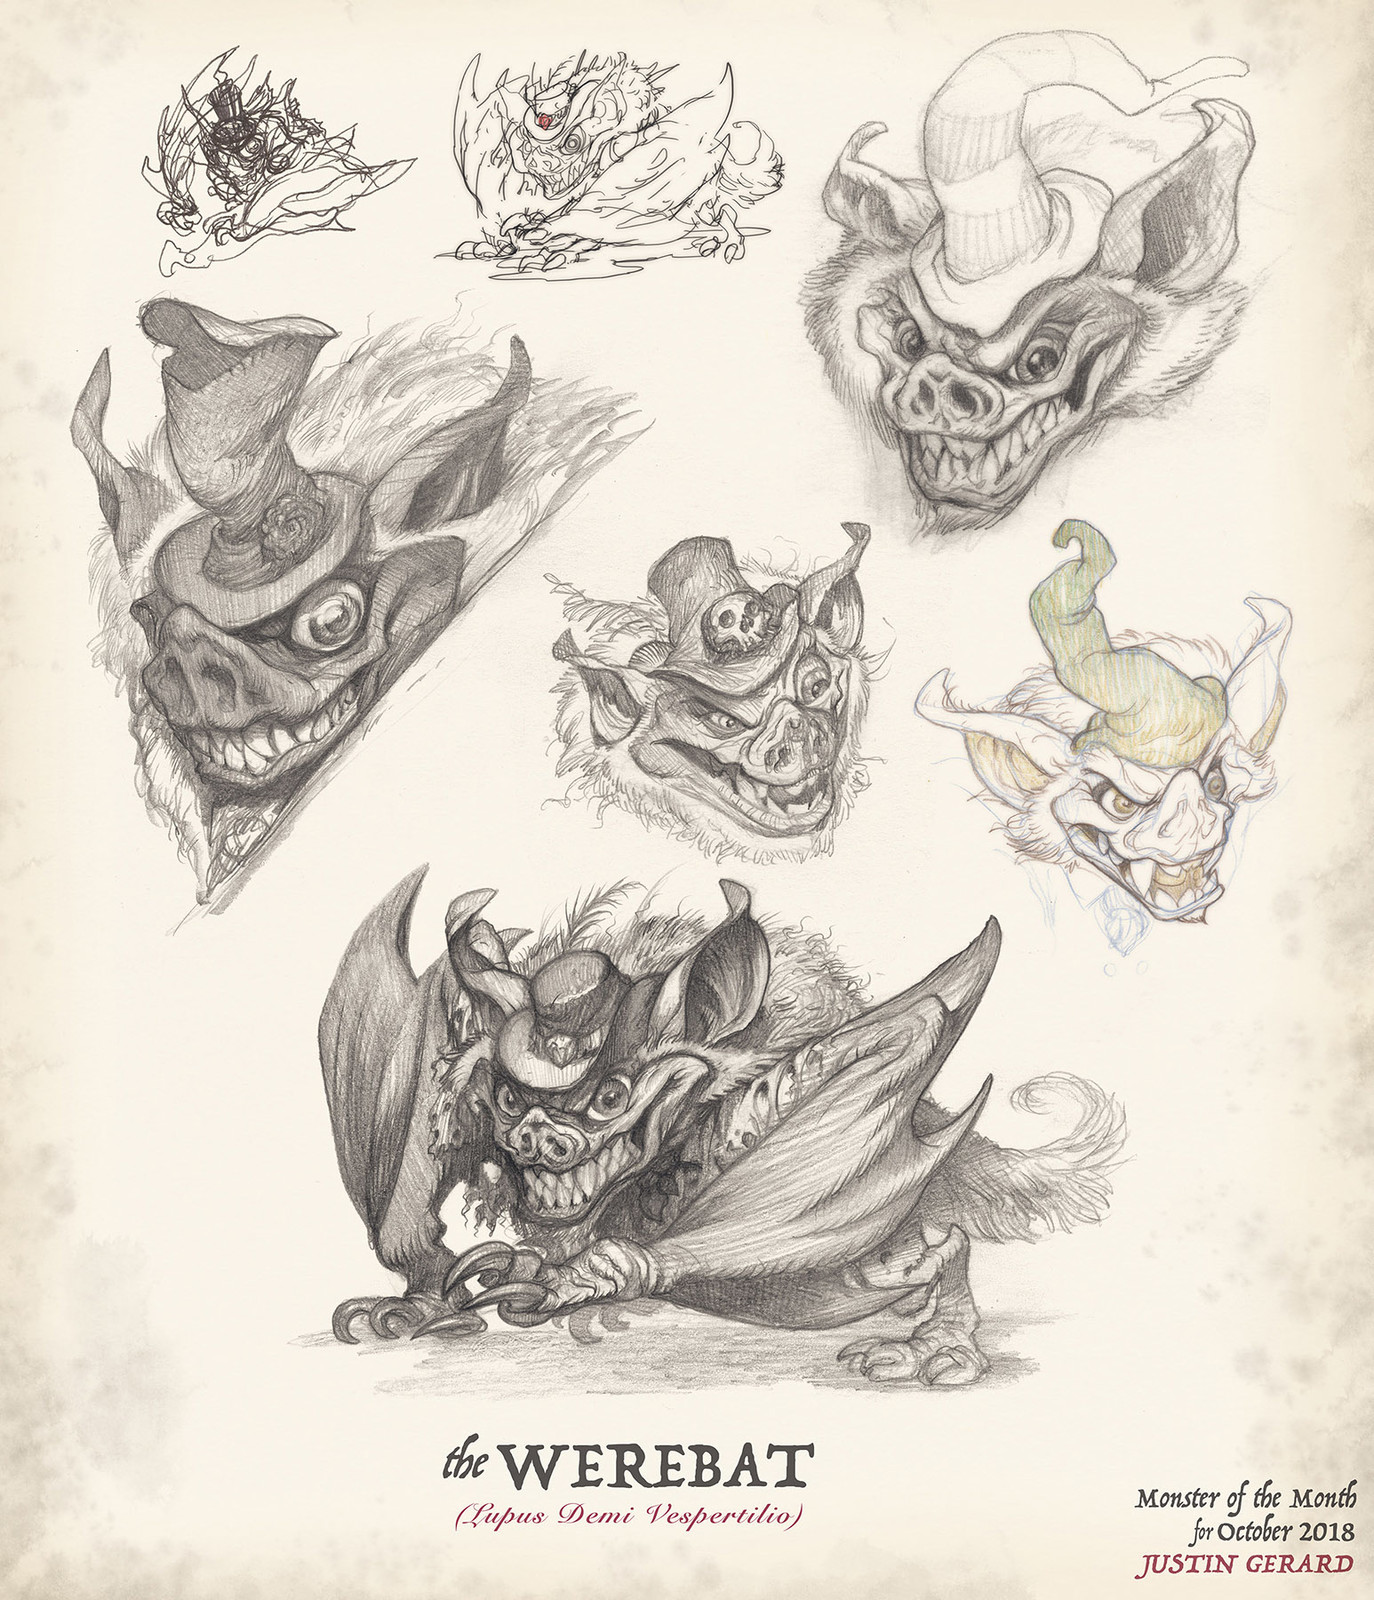 Rough drawings and conceptual designs for the Werebat